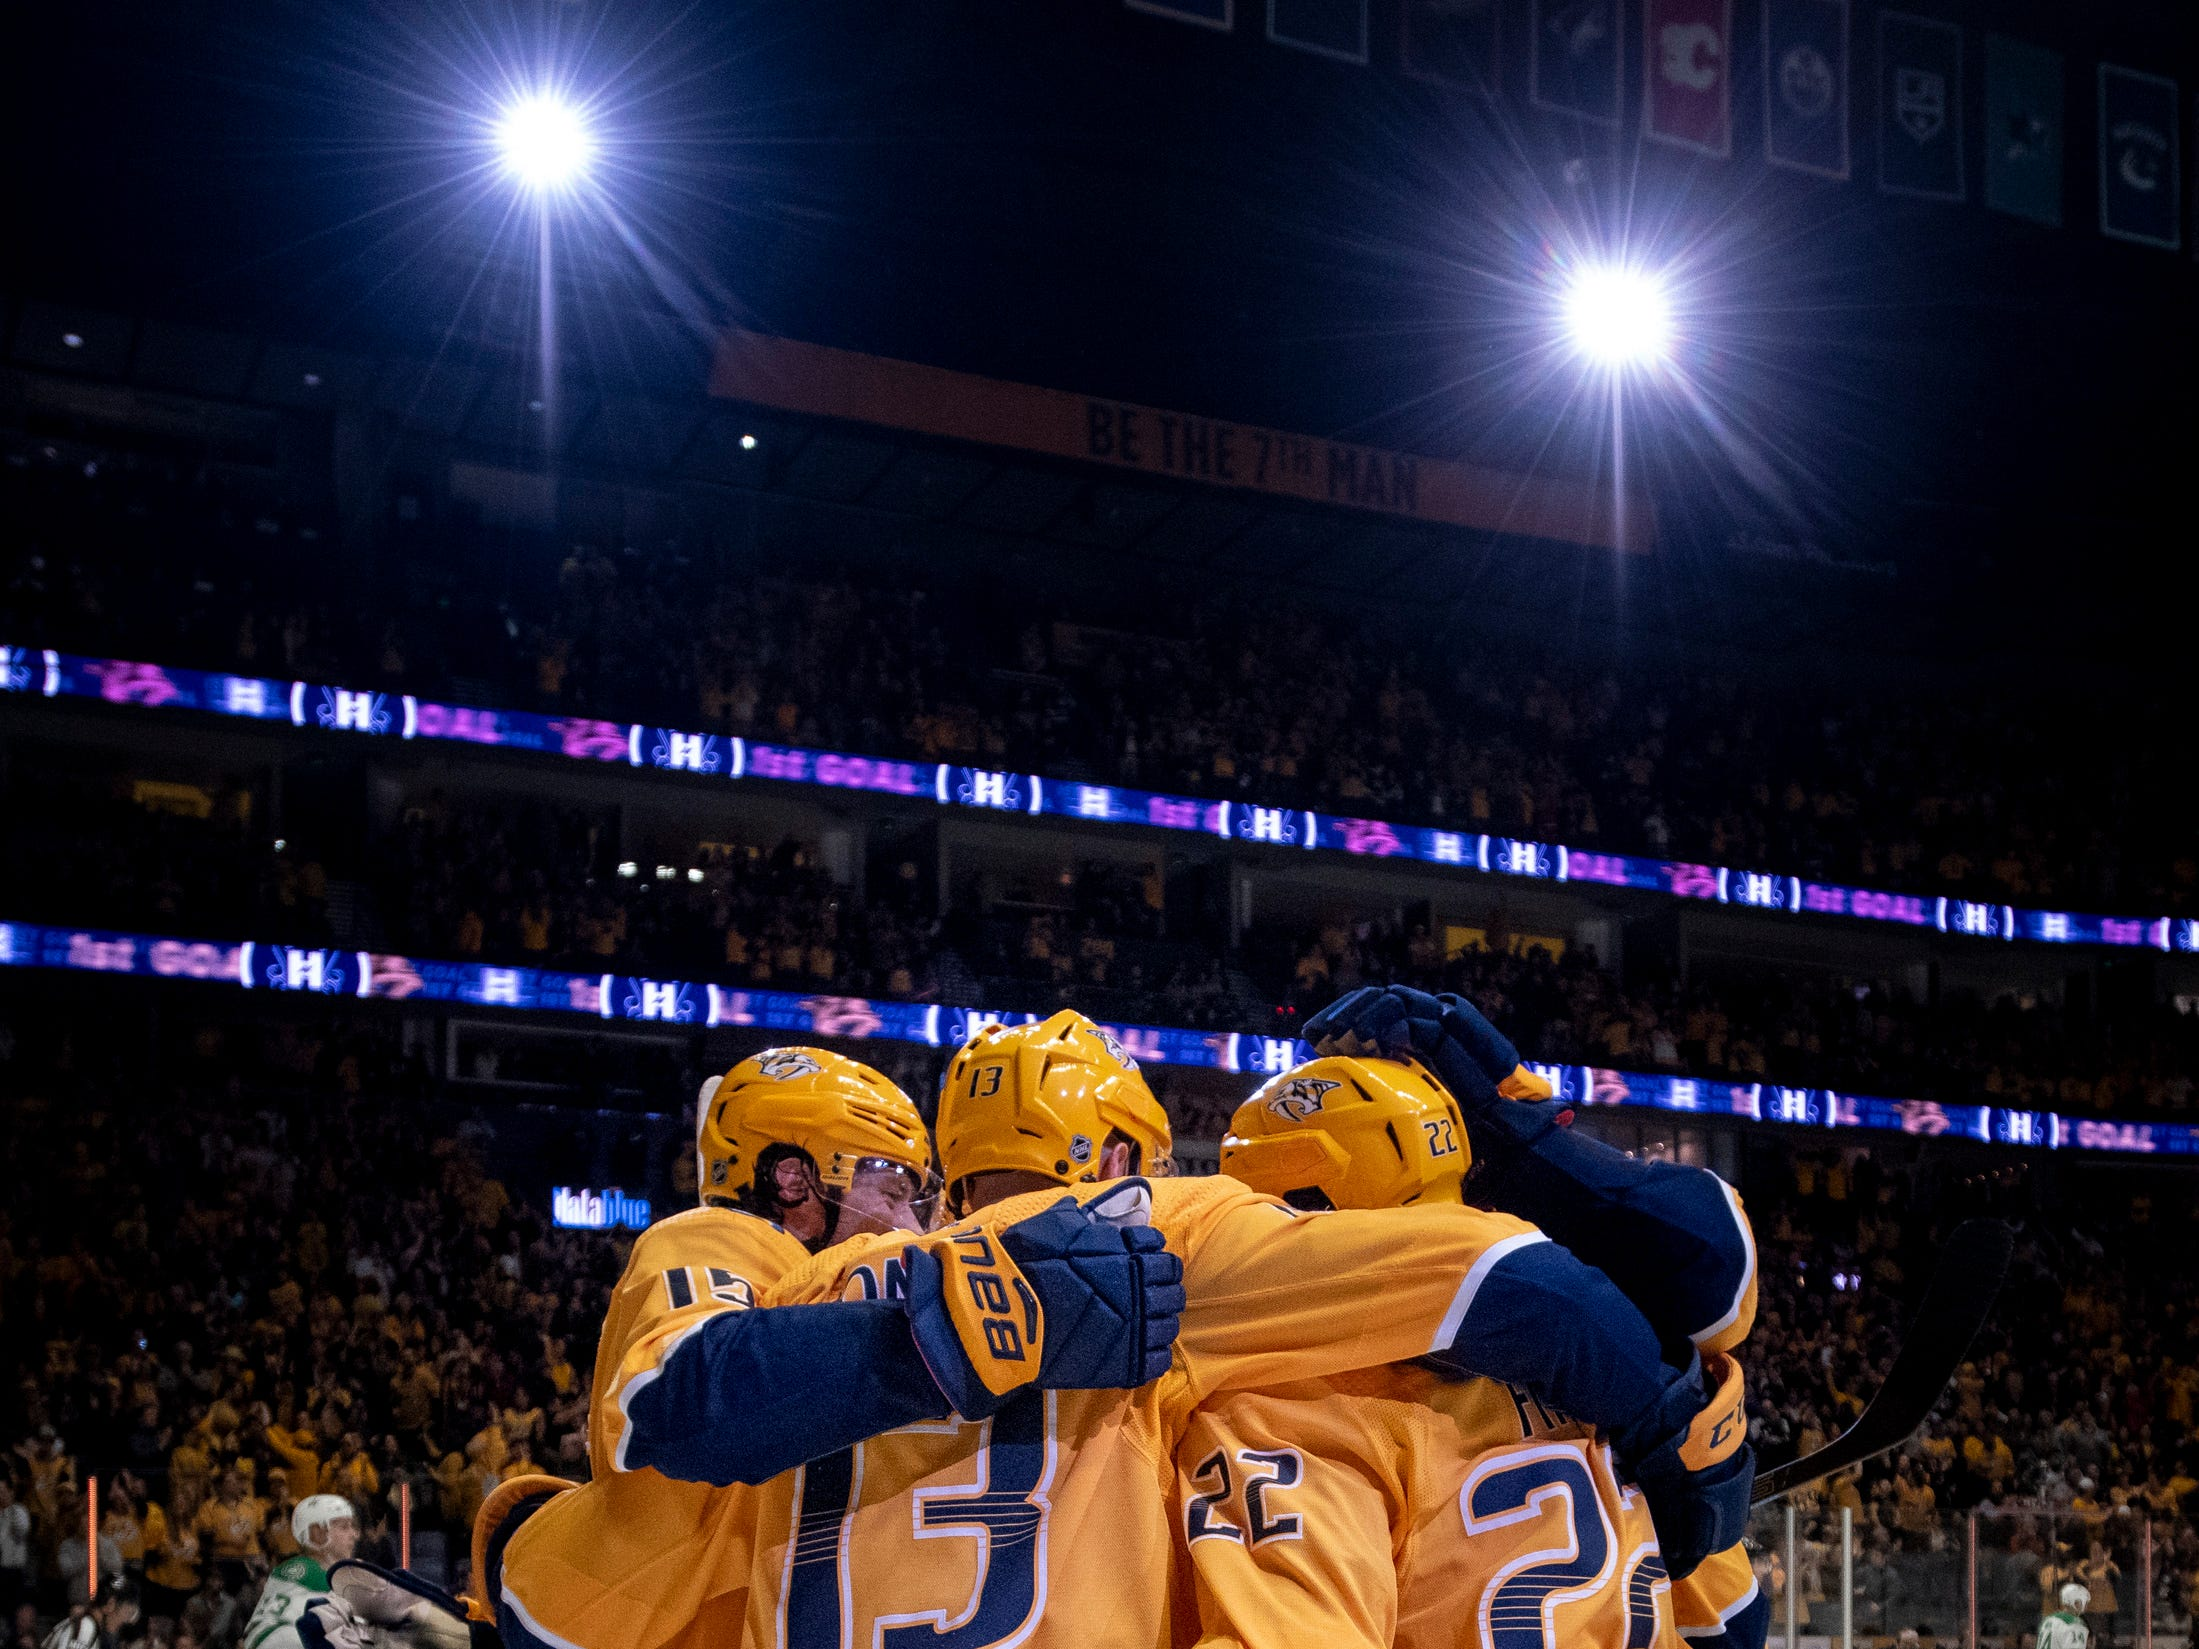 Feb 7, 2019: Preds 3, Stars 2, OT - Nashville Predators right wing Craig Smith (15, left) reacts to scoring against the Dallas Stars during the first period at Bridgestone Arena in Nashville, Tenn., Thursday, Feb. 7, 2019.